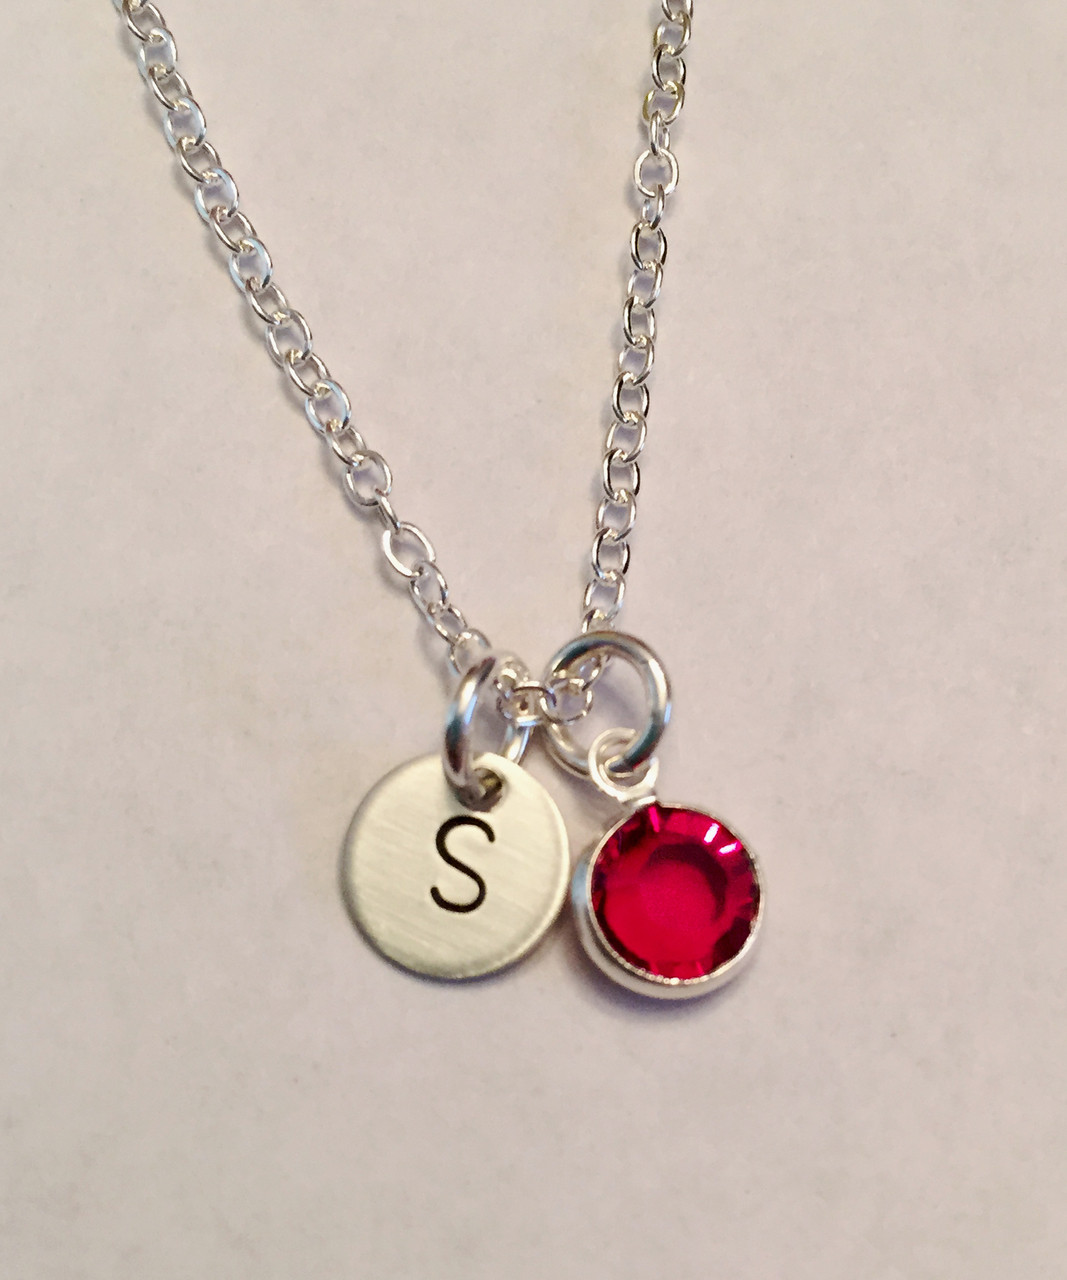 fbfc6a27f4954 Tiny Single Initial Stamped Necklace with Swarovski Birthstone, all  Sterling Silver